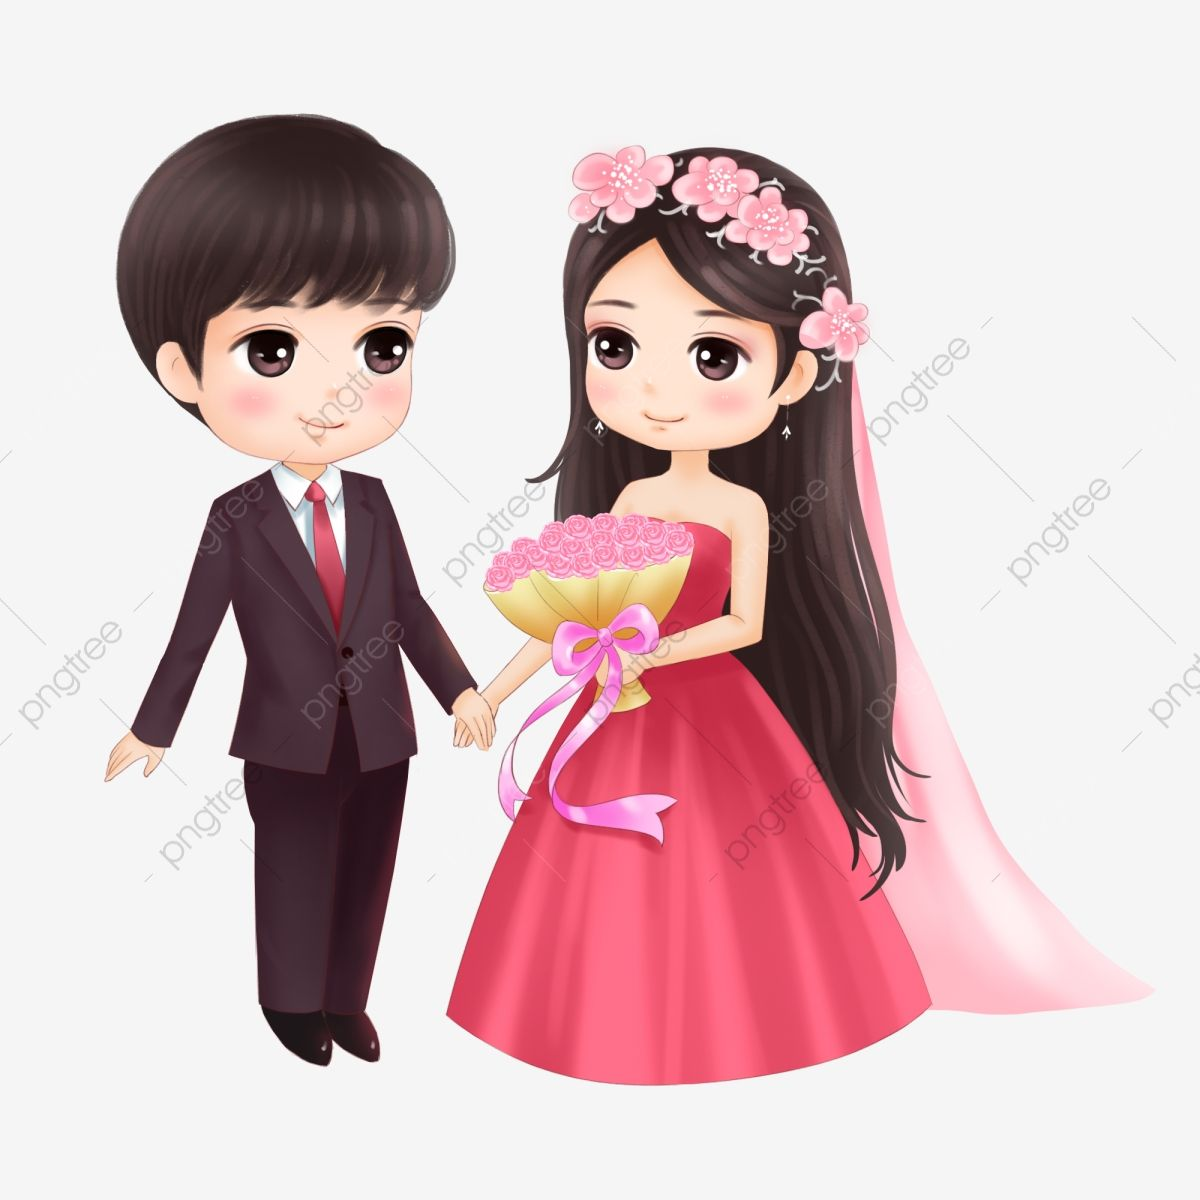 Valentines Day Couple Cartoon Wedding Comics Couple Comics Wedding Comics Wedding Cartoon Png Free Buckle Png Transparent Clipart Image And Psd File For Free Wedding Couple Cartoon Couple Cartoon Cute Couple